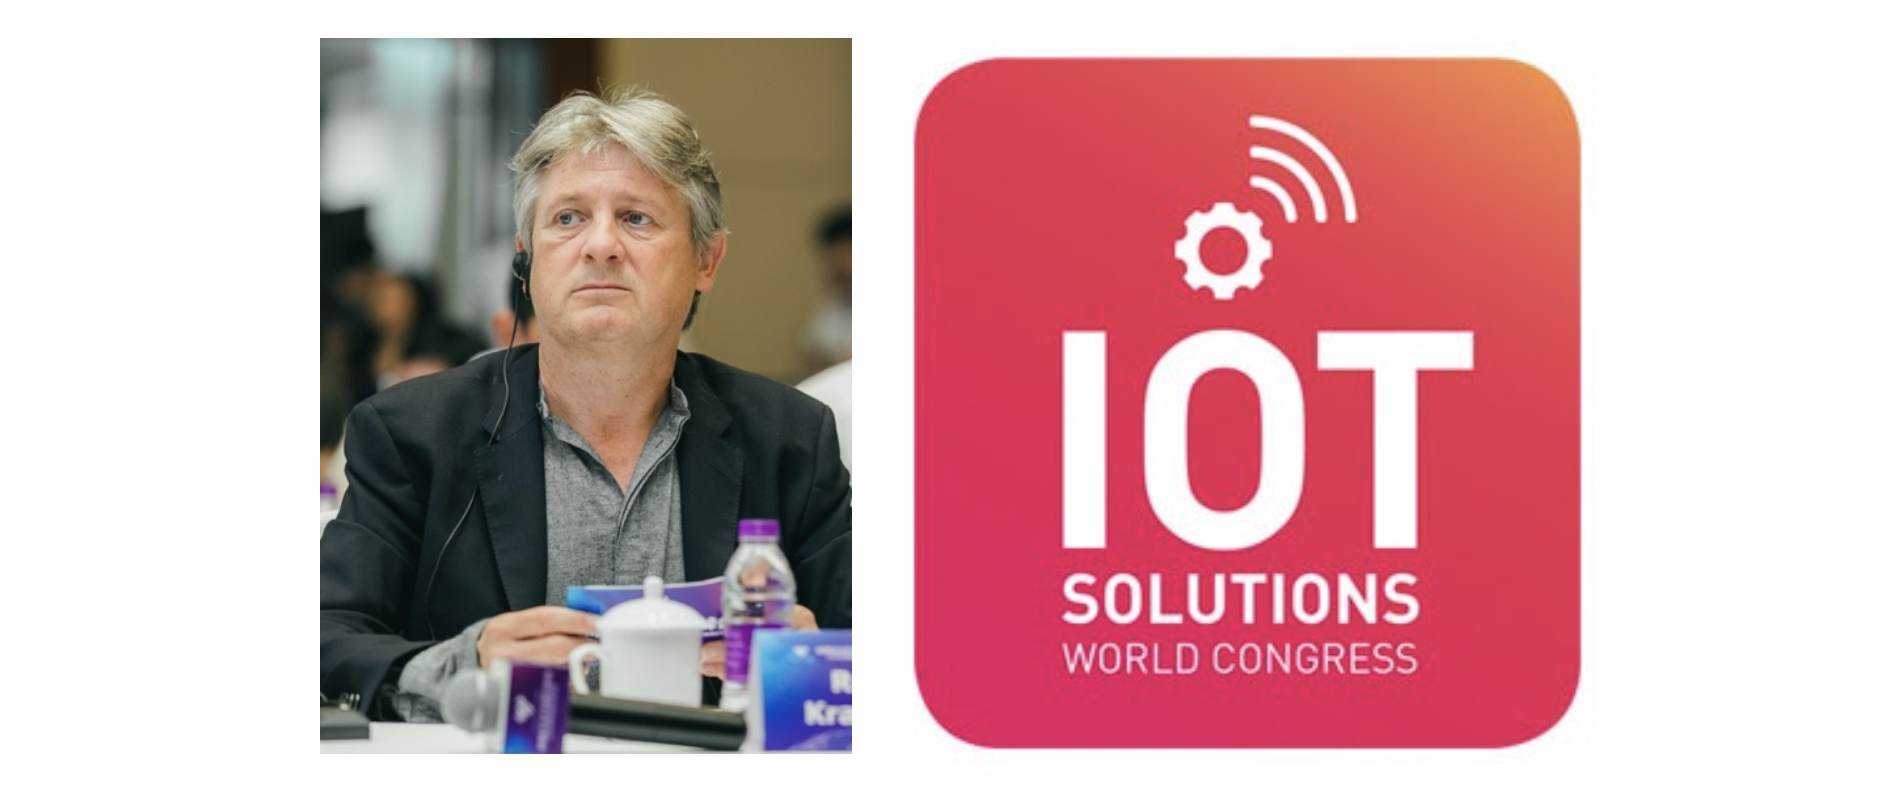 rob van kranenburg and the iot solutions world congress logo